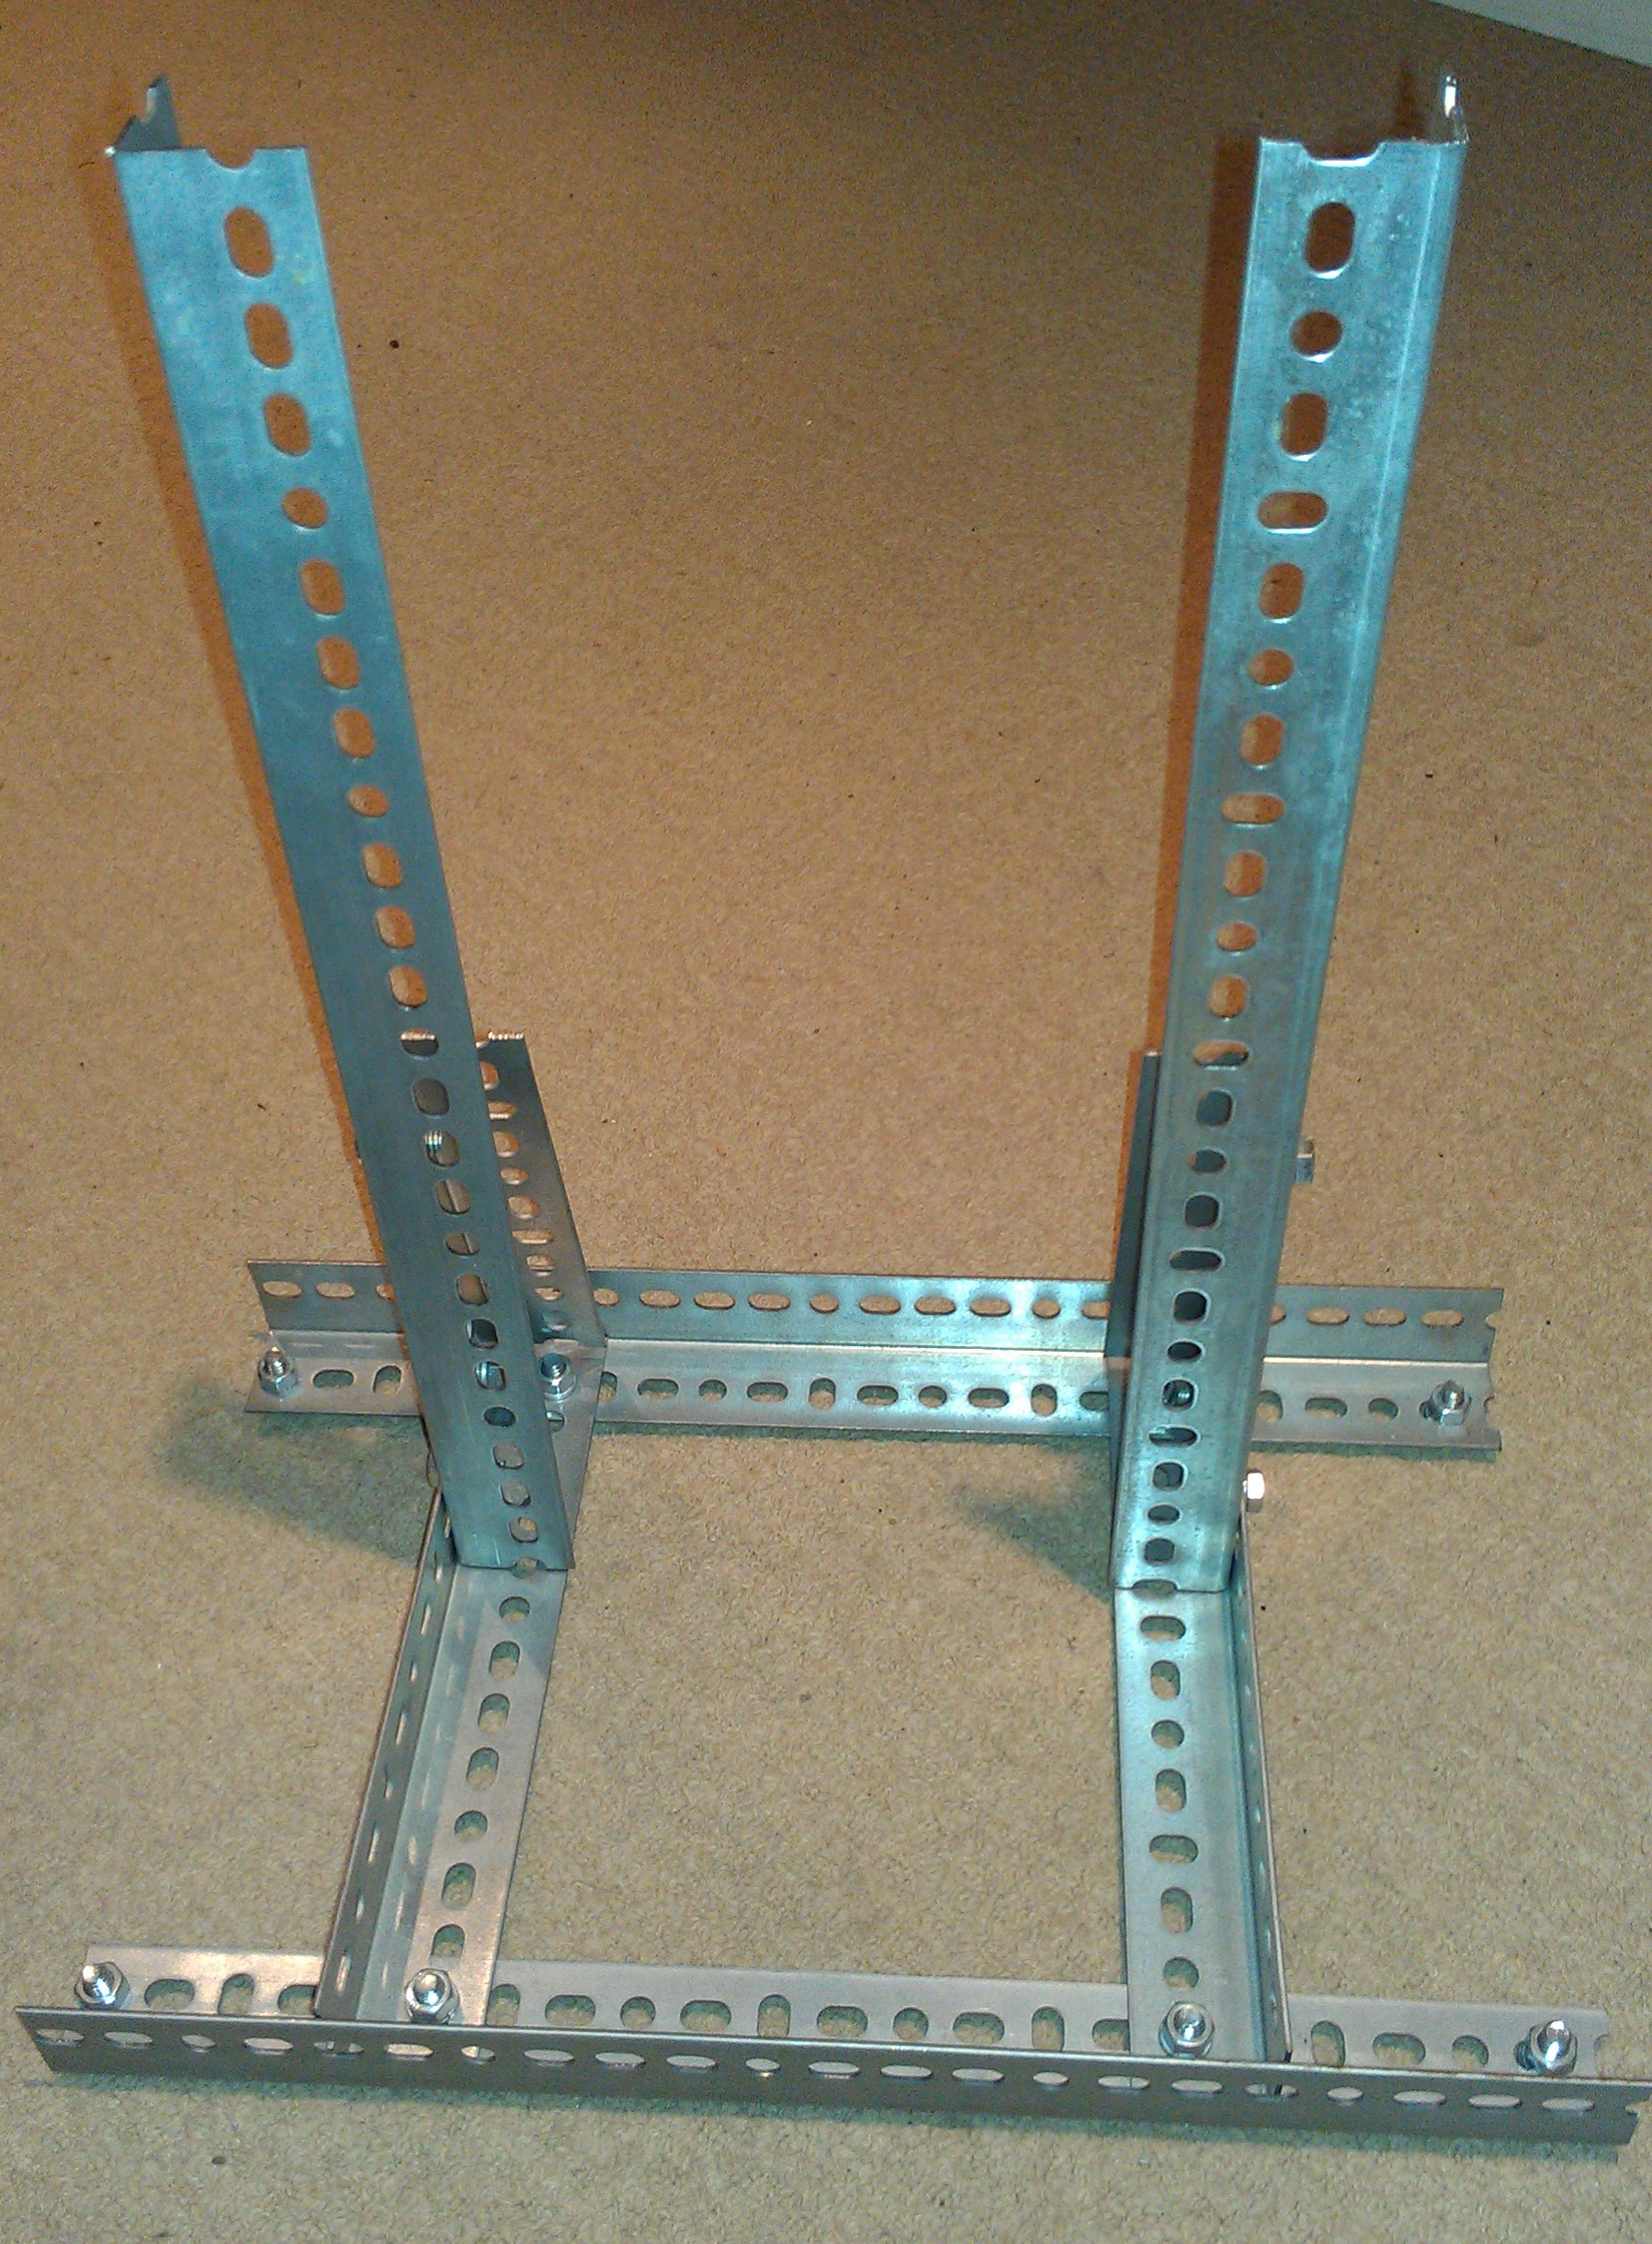 Replacement LCD TV stand